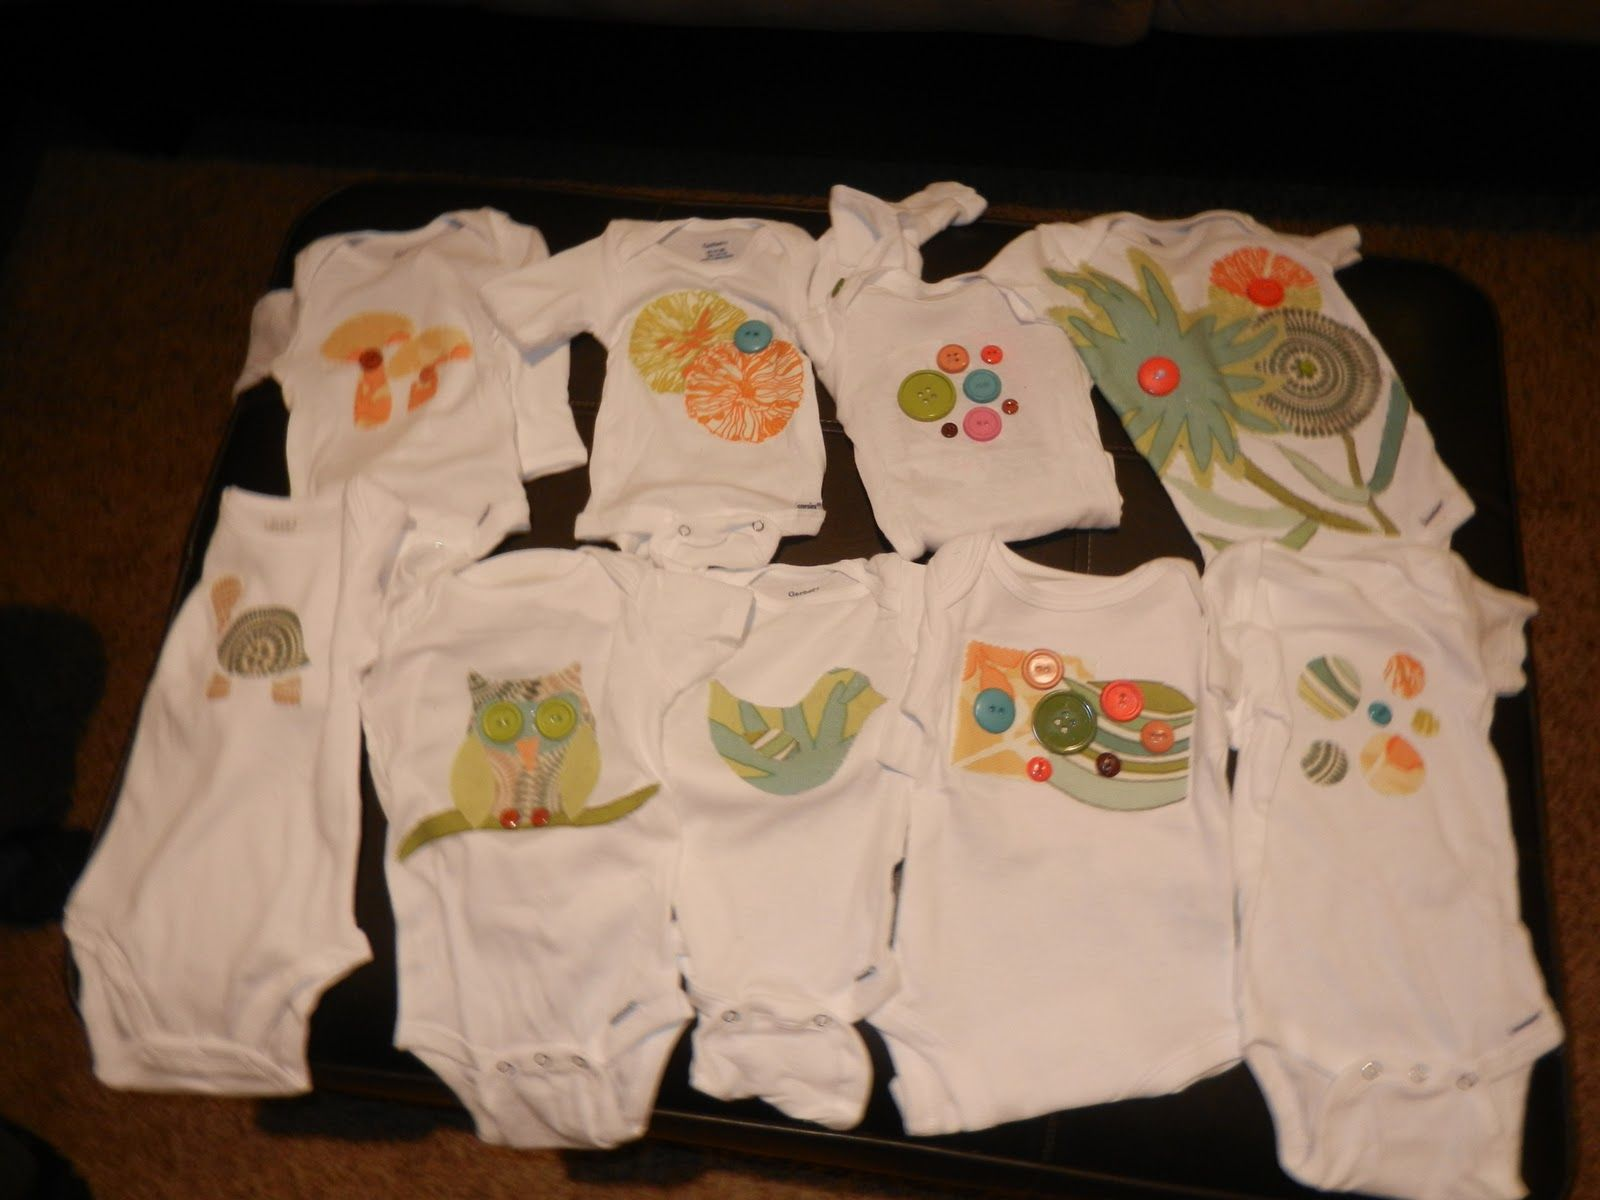 Decorate Your Own Onesie Ideas   Google Search · Baby Shower ...